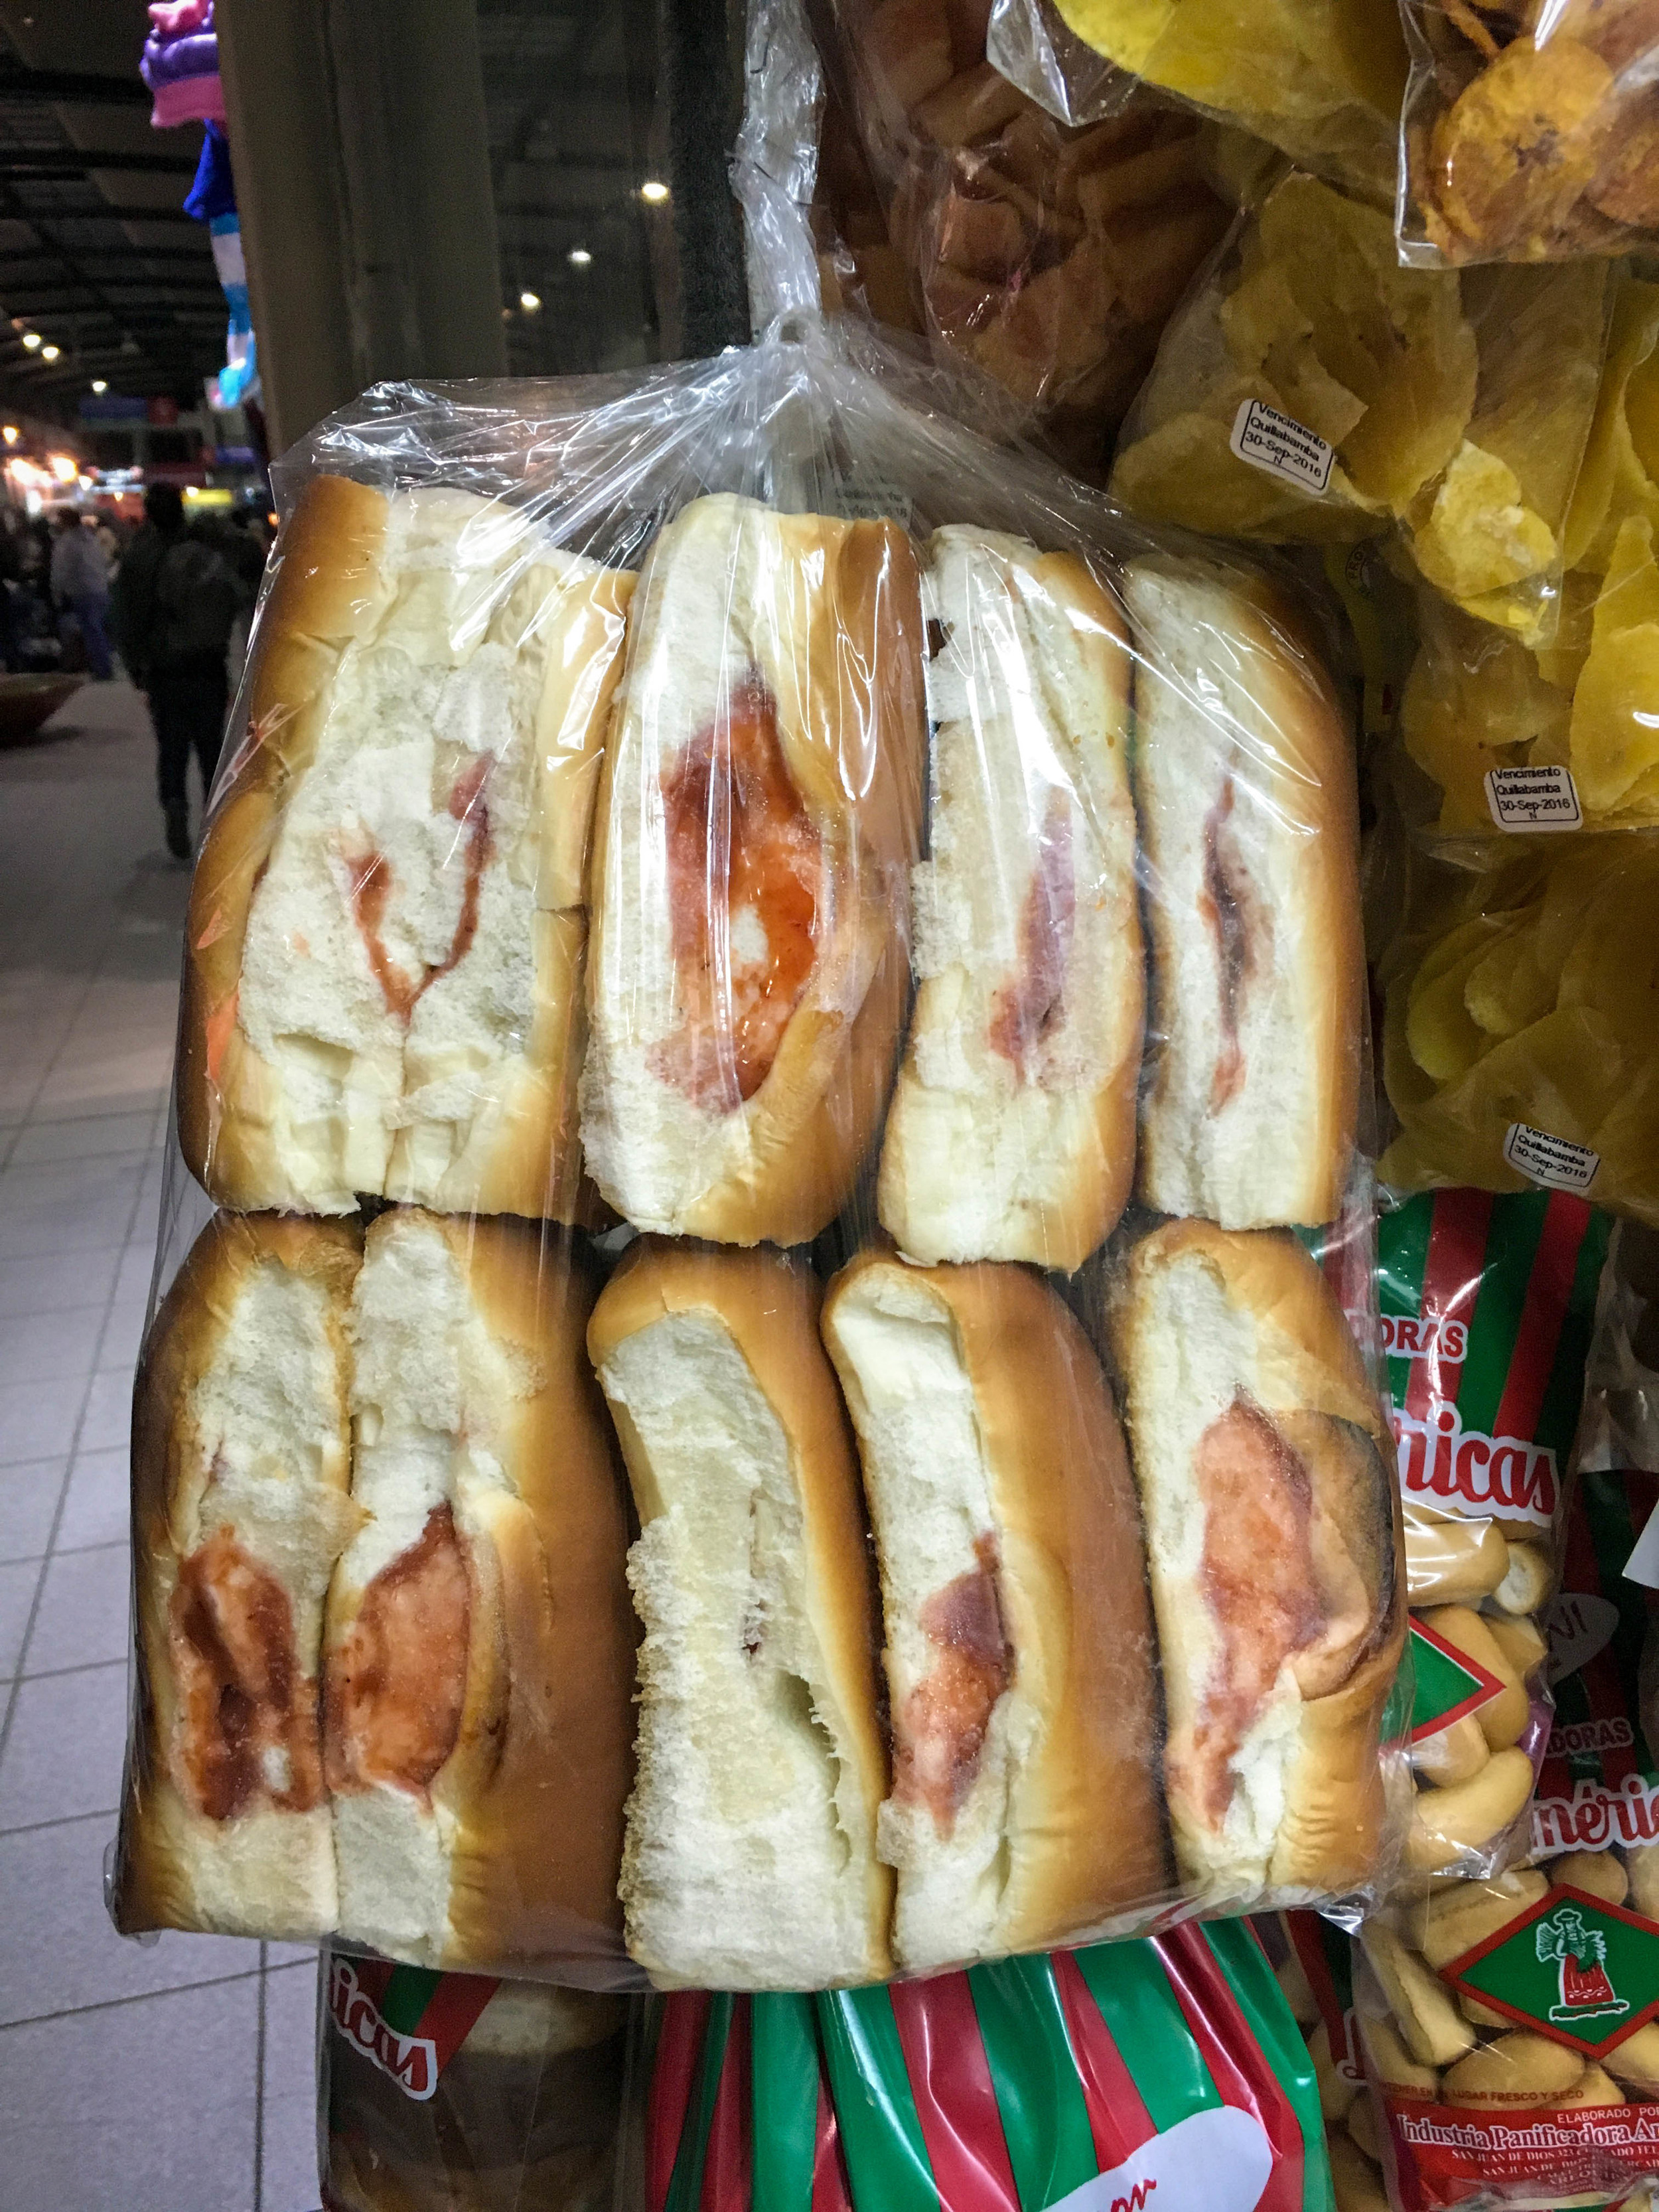 In the bus station, these are for sale. I had to ask the store owner to confirm that it was literally just a white hot dog bun with strawberry jam.